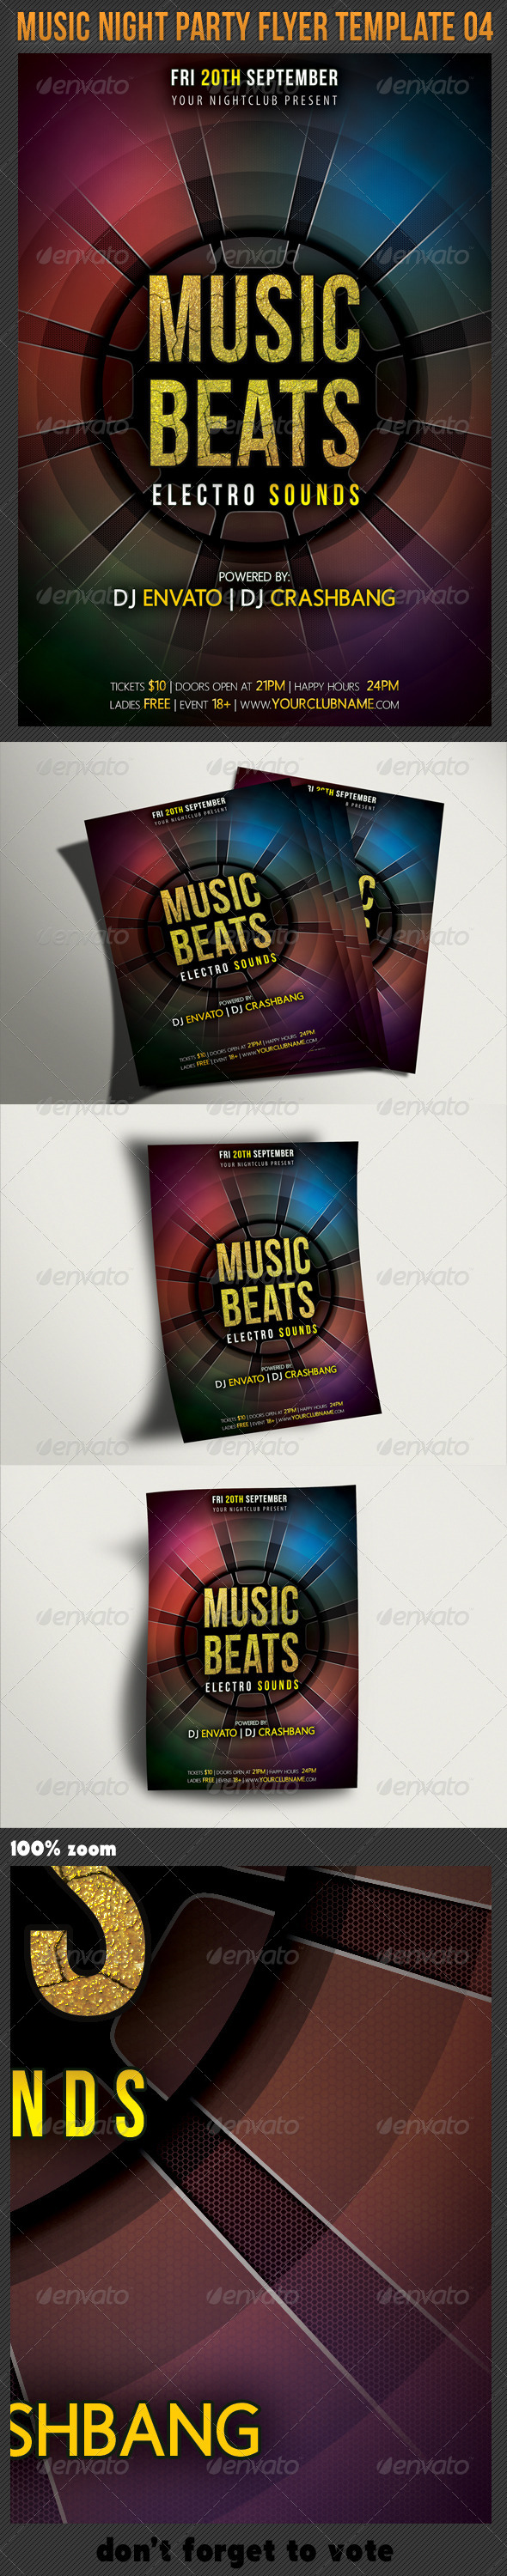 Music Night Party Flyer Template 04 - Clubs & Parties Events